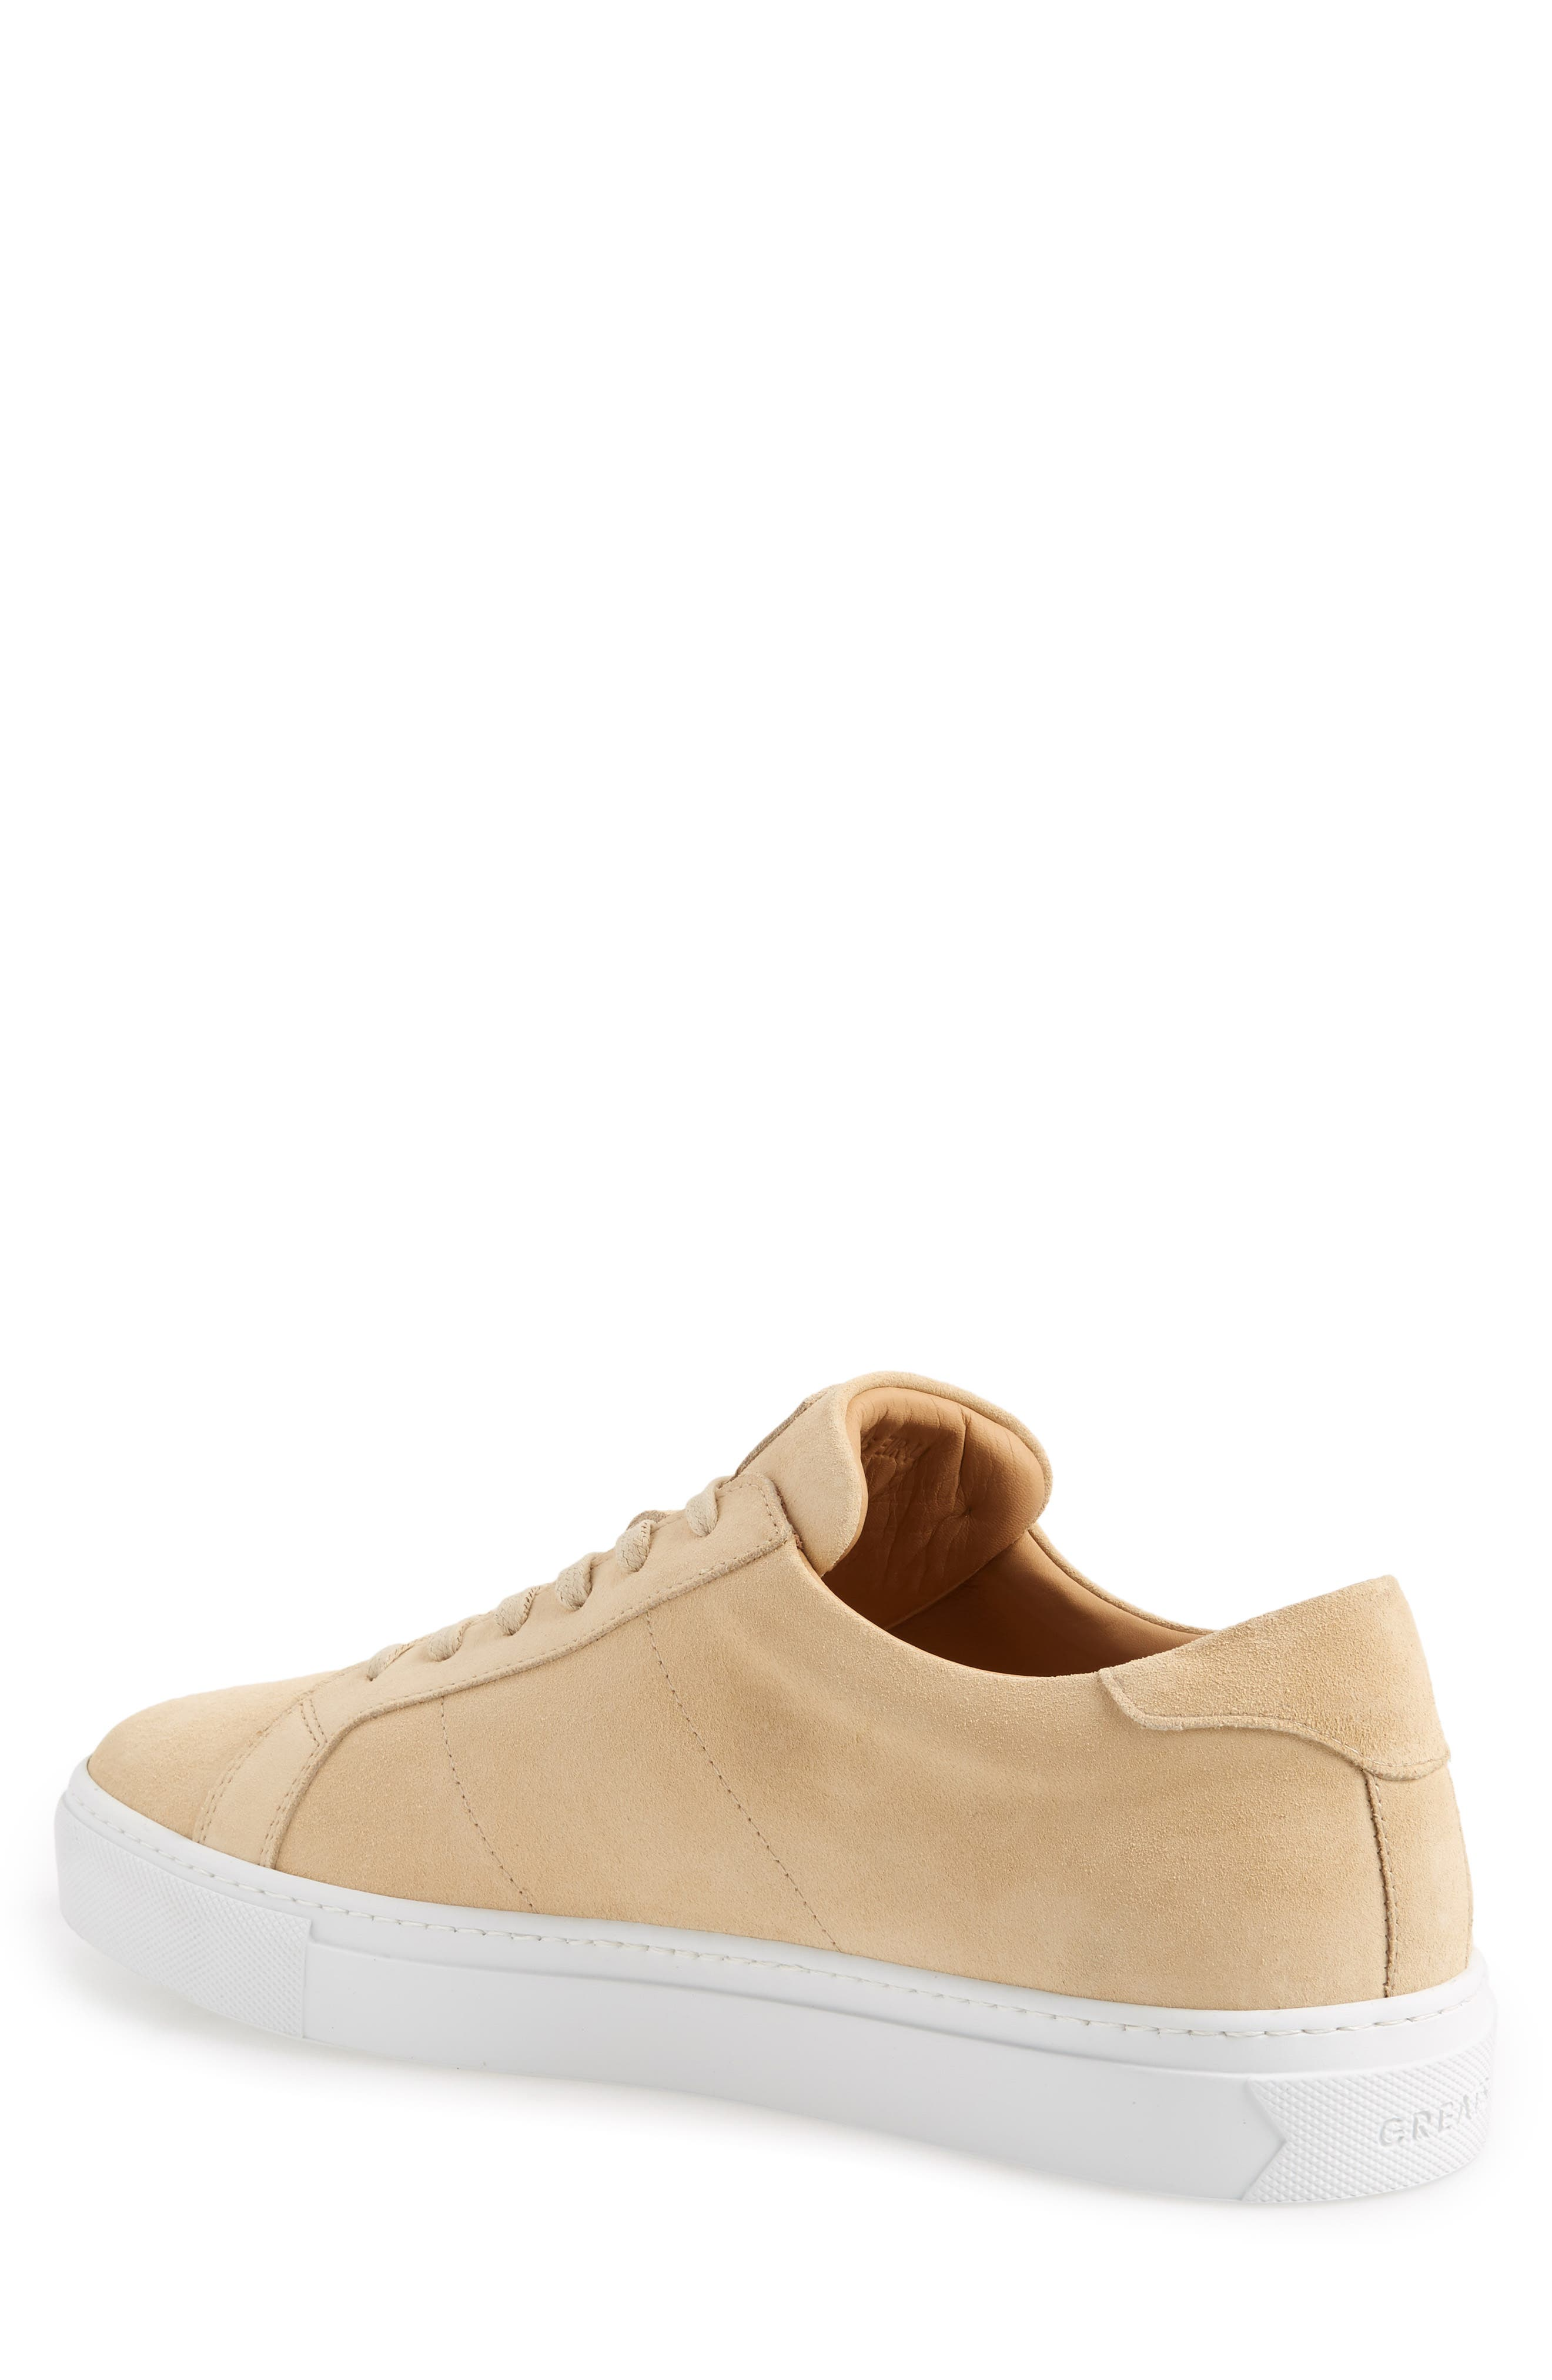 Nick Wooster x GREATS Royale Sneaker,                             Alternate thumbnail 2, color,                             250